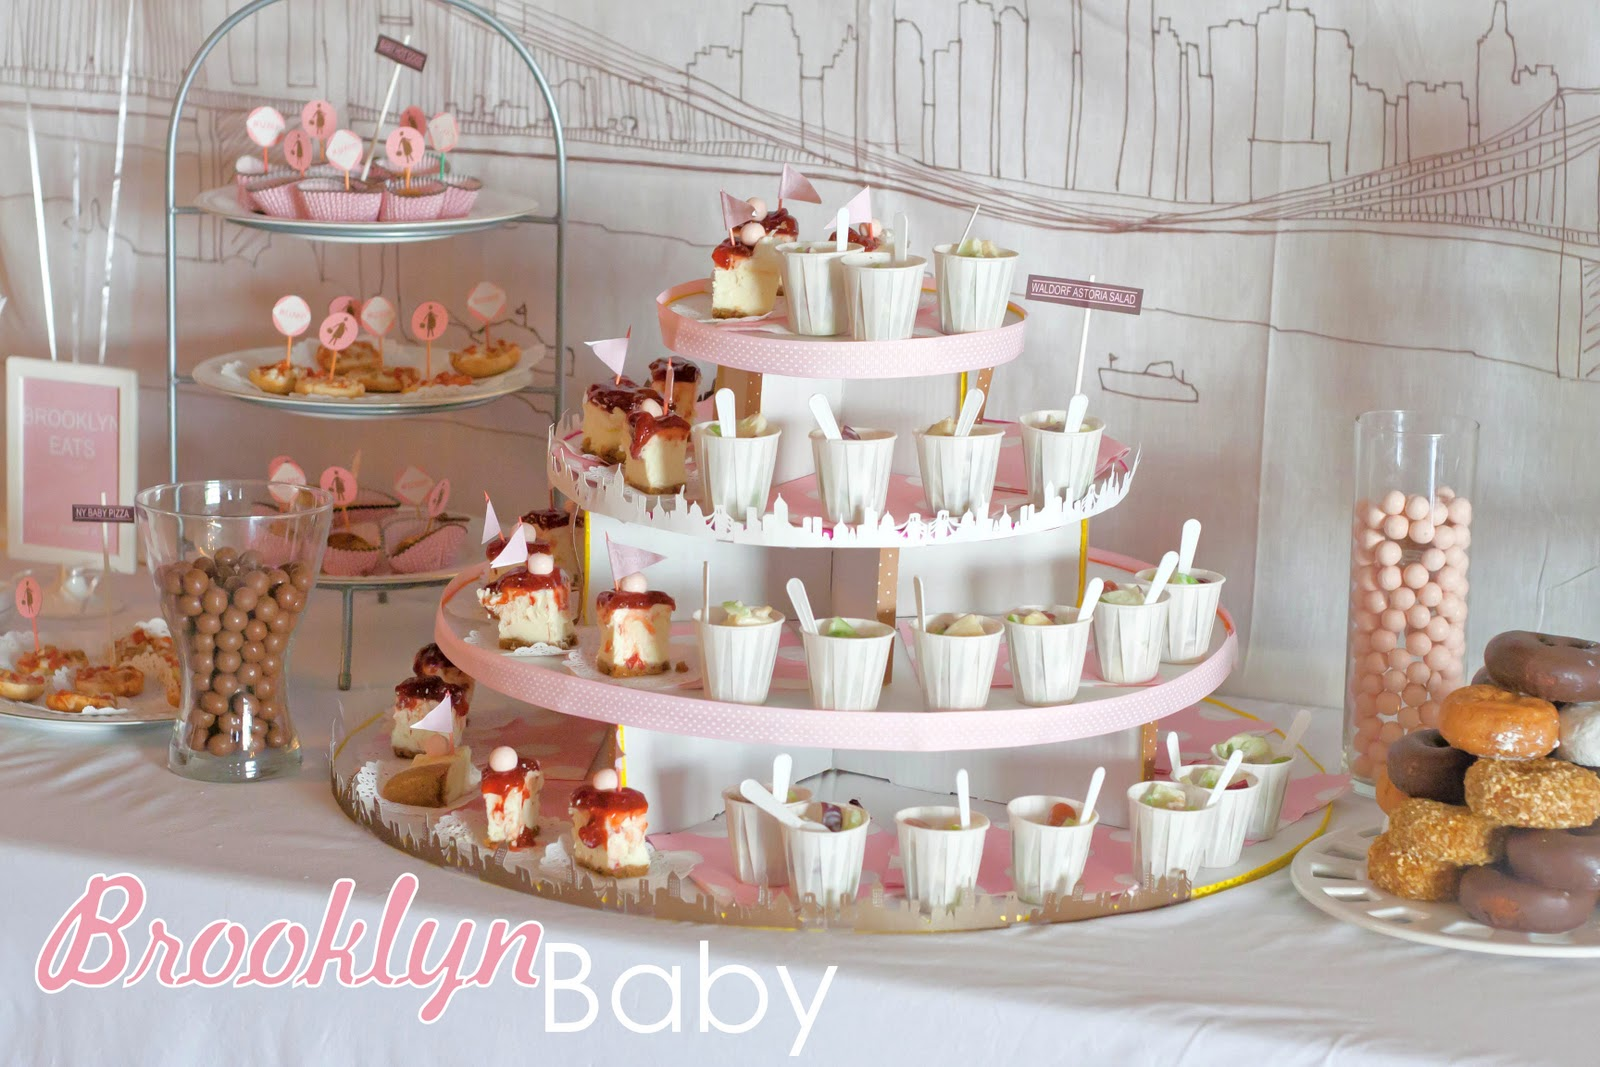 Brooklyn Baby, A unique baby shower - My Insanity